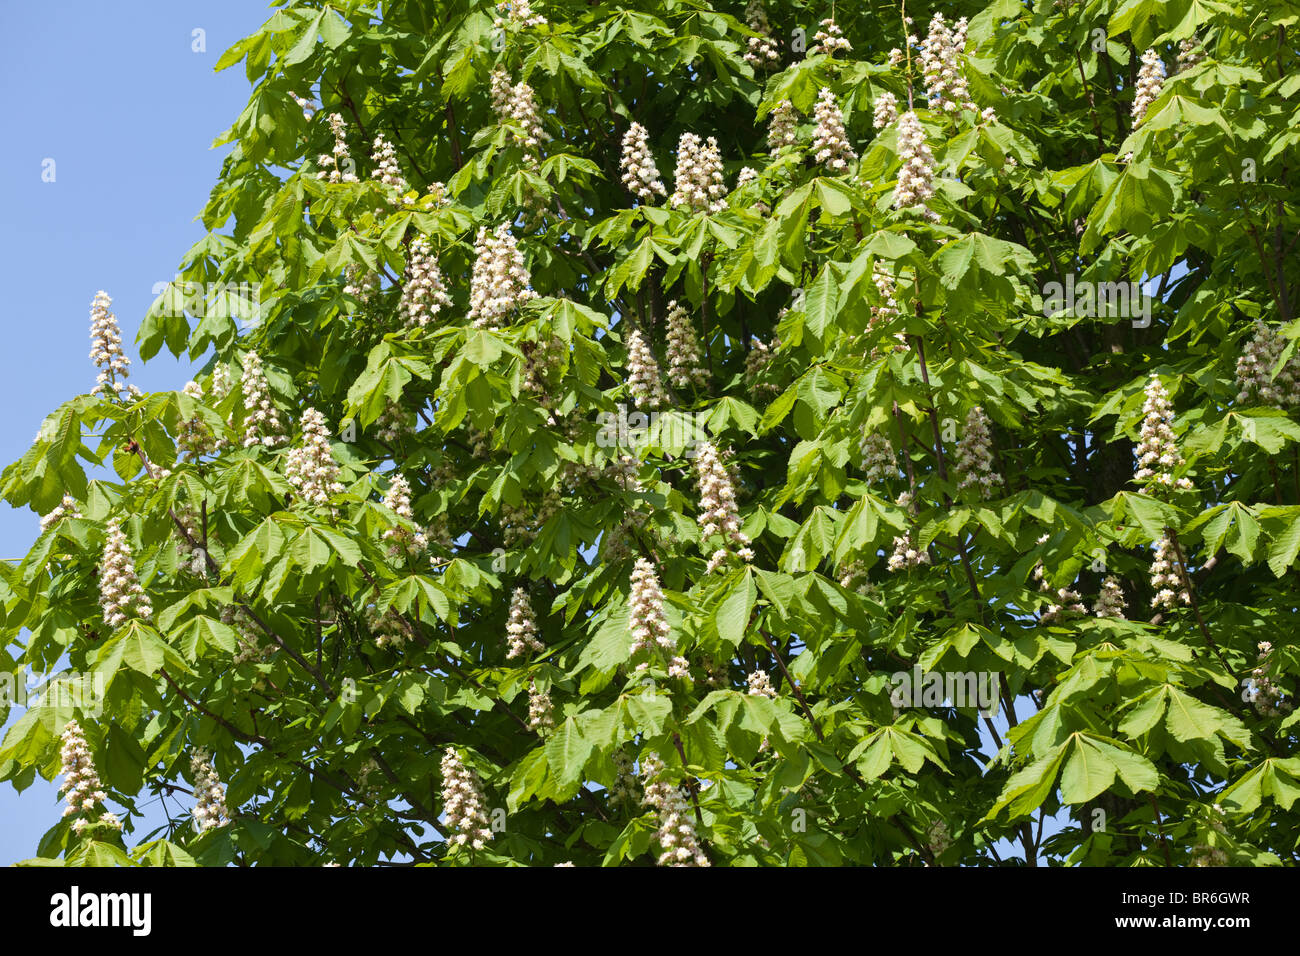 Horse chestnut tree in blossom in the Cotswold village of Laverton, Gloucestershire - Stock Image